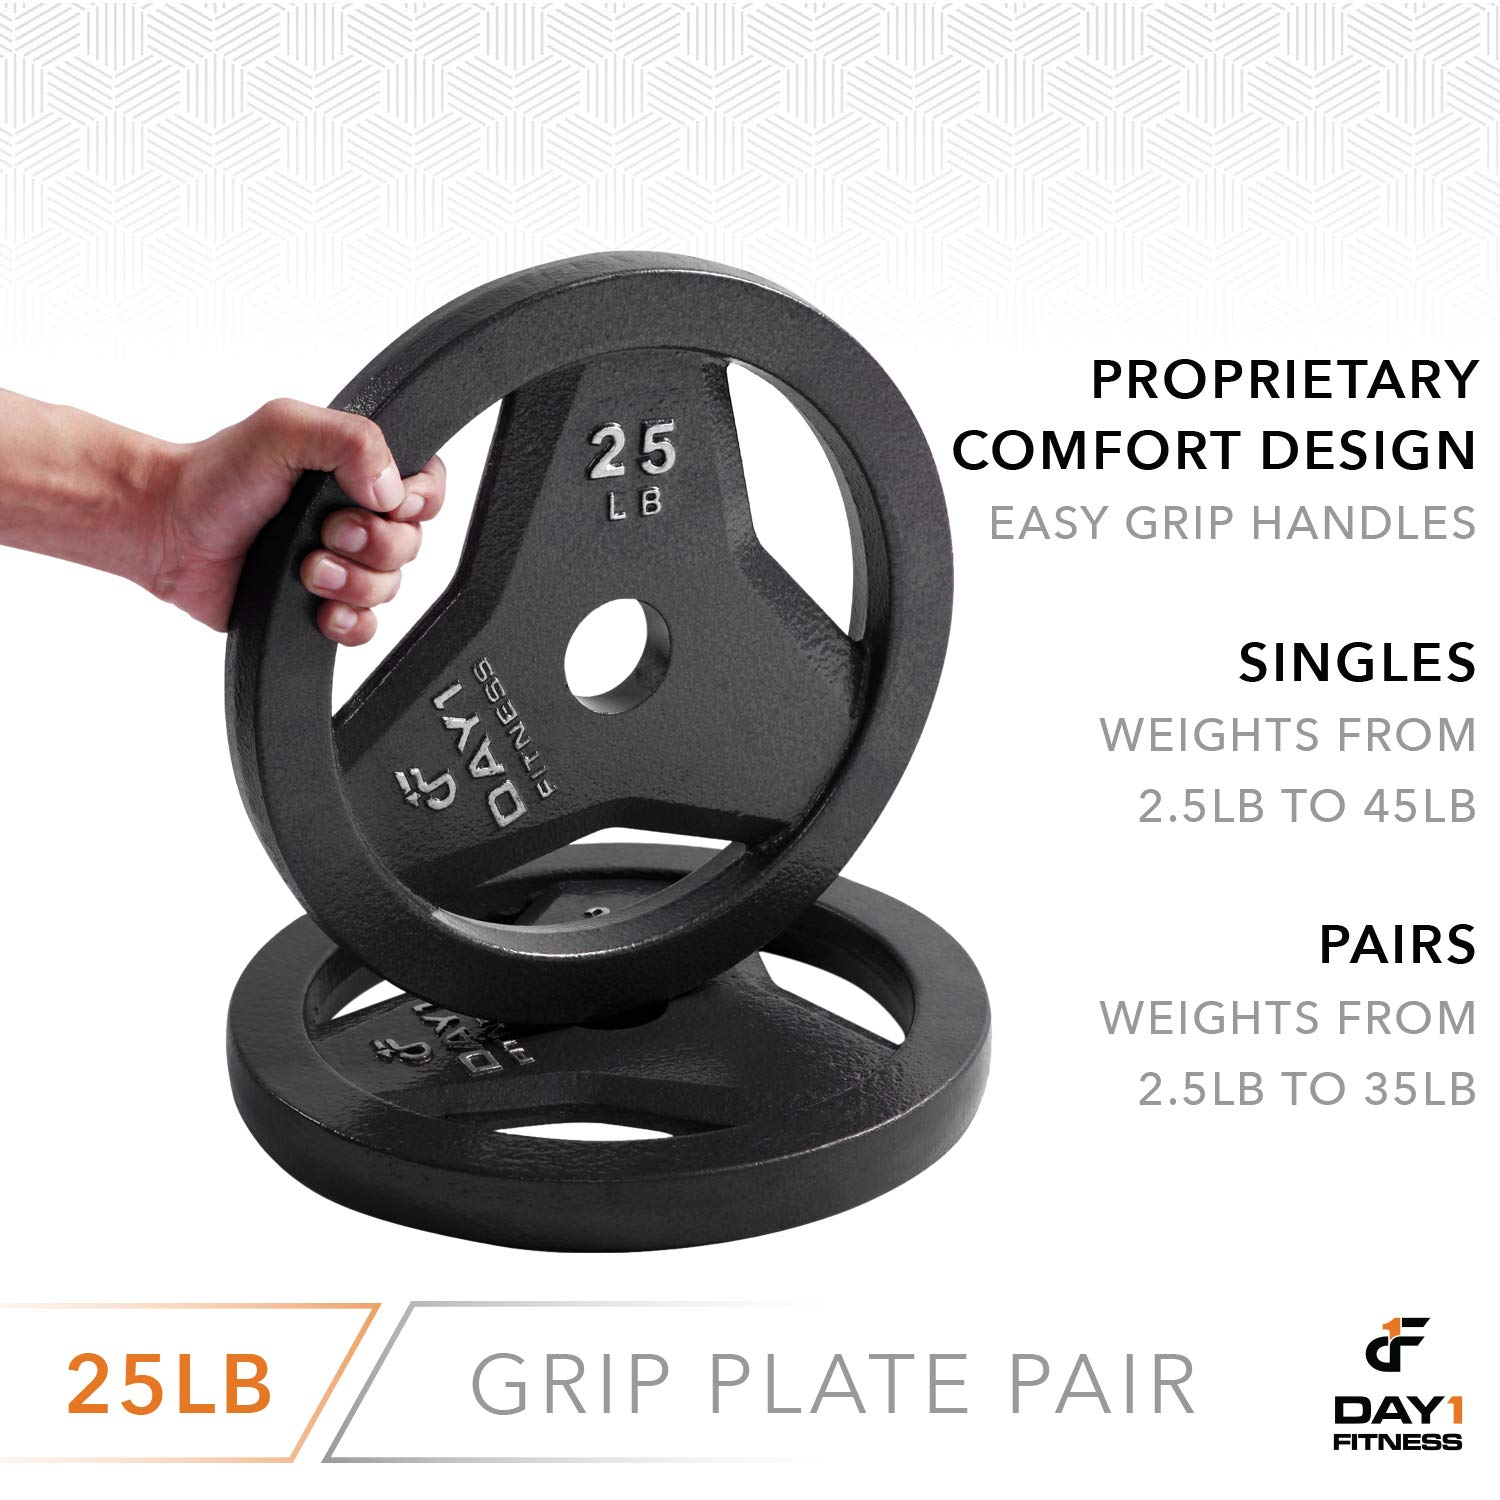 "Day 1 Fitness Cast Iron Olympic 2-Inch Grip Plate for Barbell, 25 Pound Set of 2 Plates Iron Grip Plates for Weightlifting, Crossfit - 2"" Weight Plate for Bodybuilding by Day 1 Fitness (Image #5)"